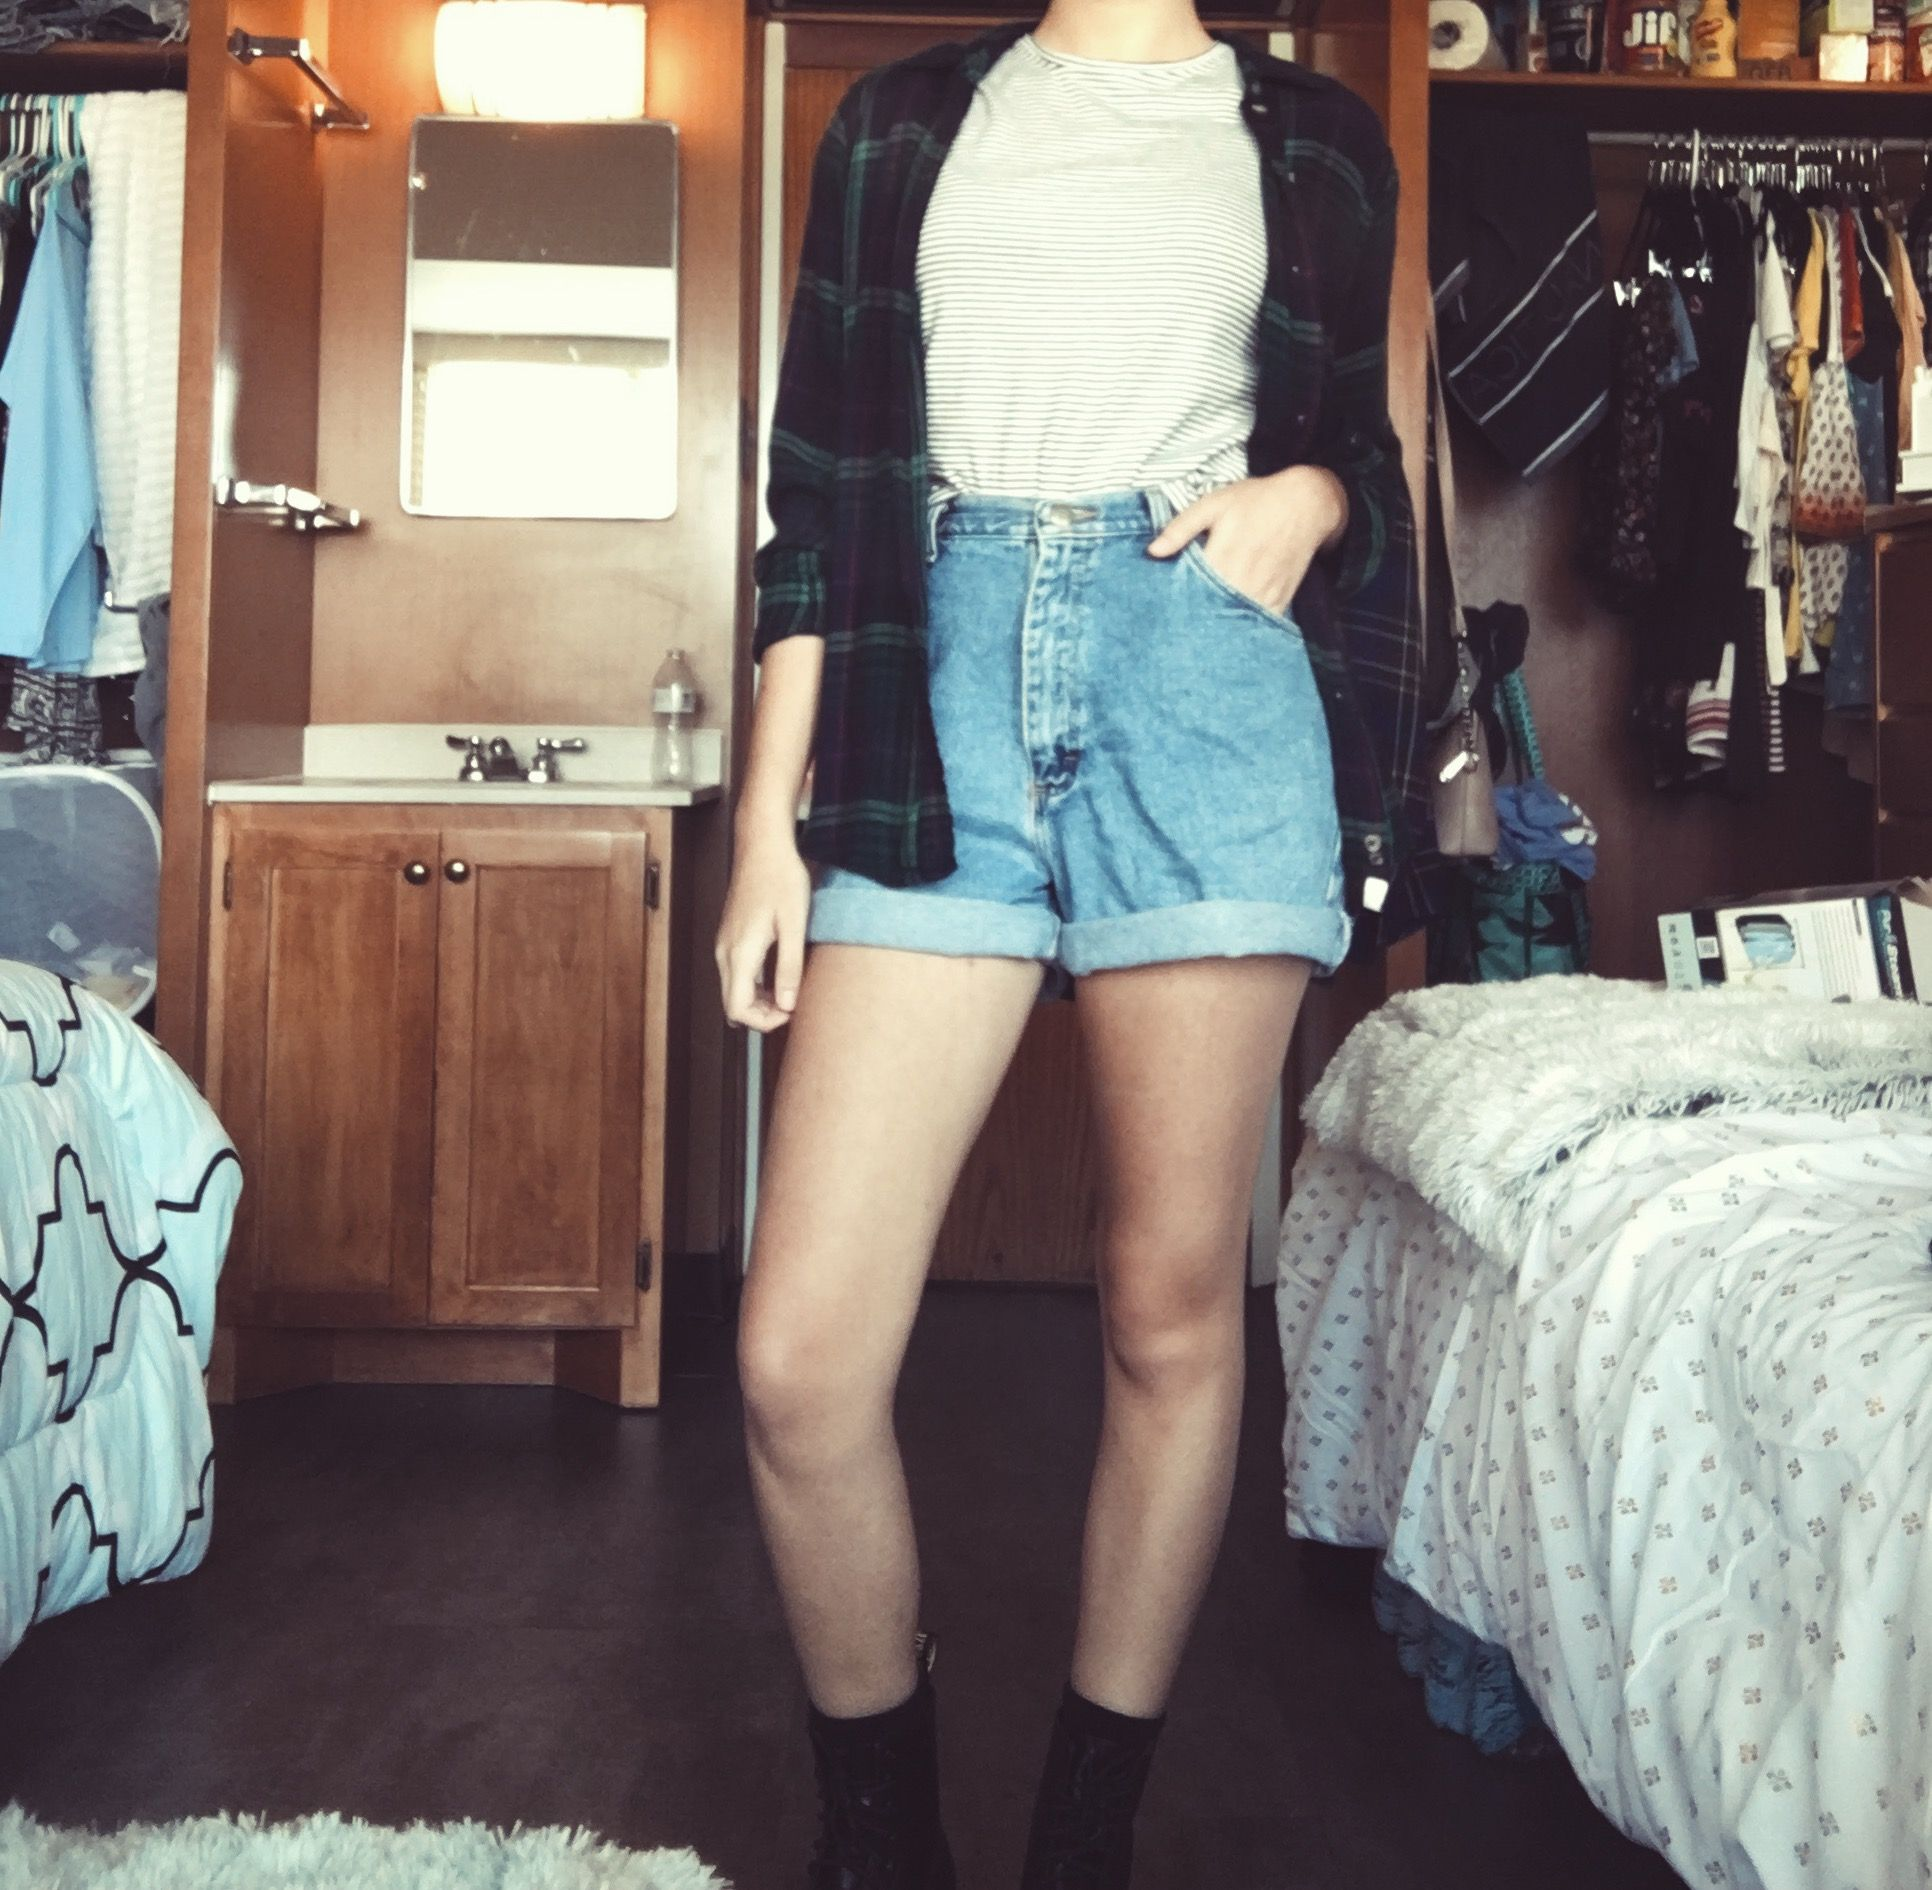 To acquire Waisted High shorts outfits tumblr pictures trends